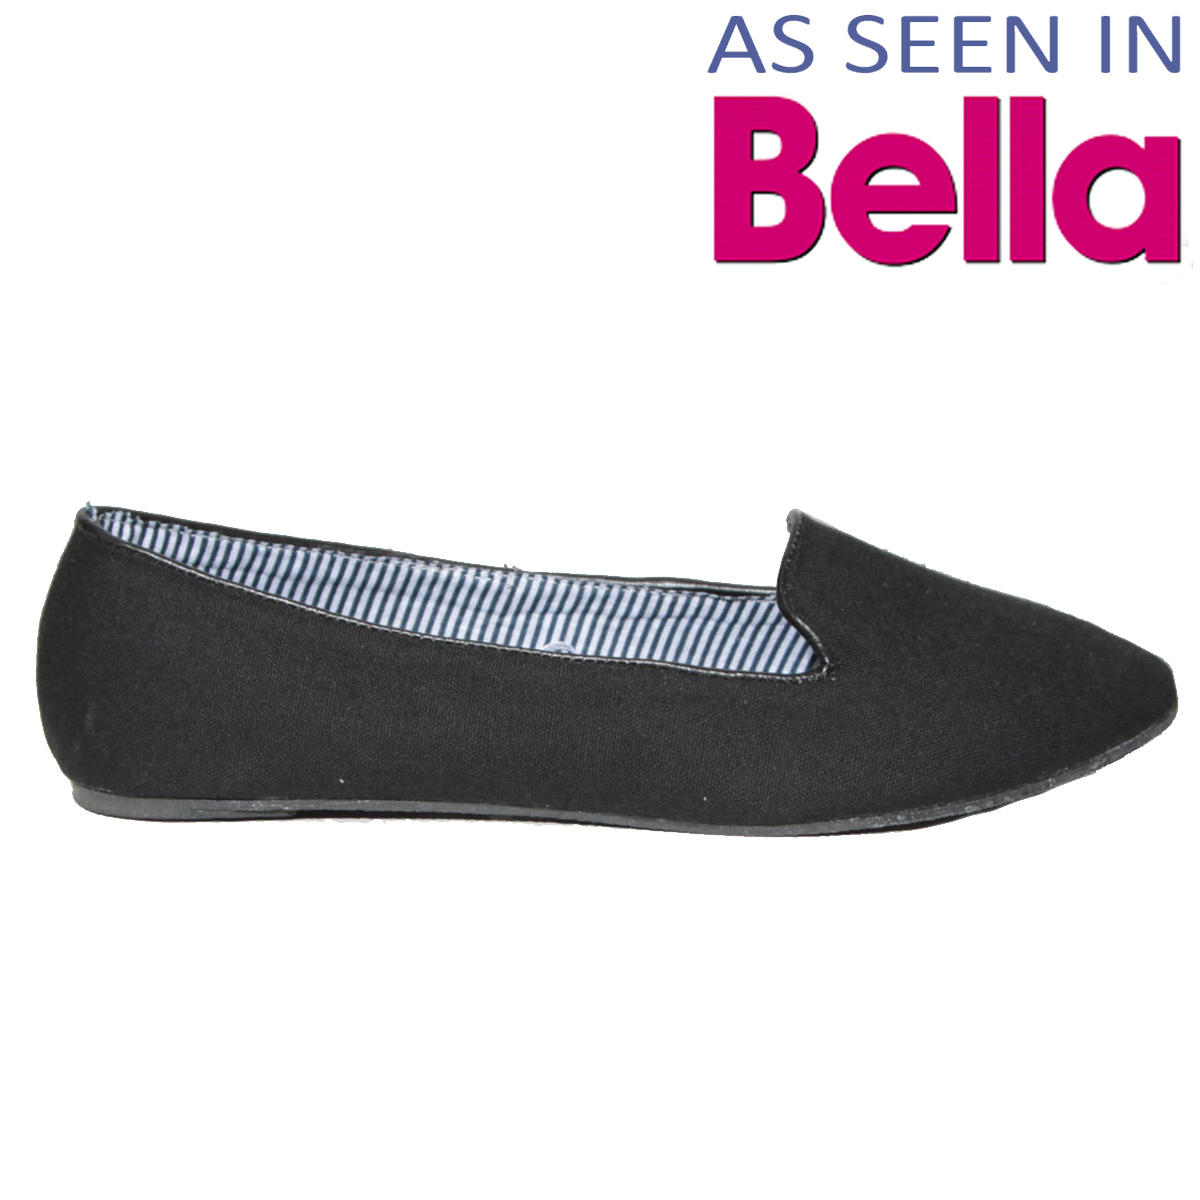 SIZE 4 ONLY Black Flat Slipper Shoe Preview